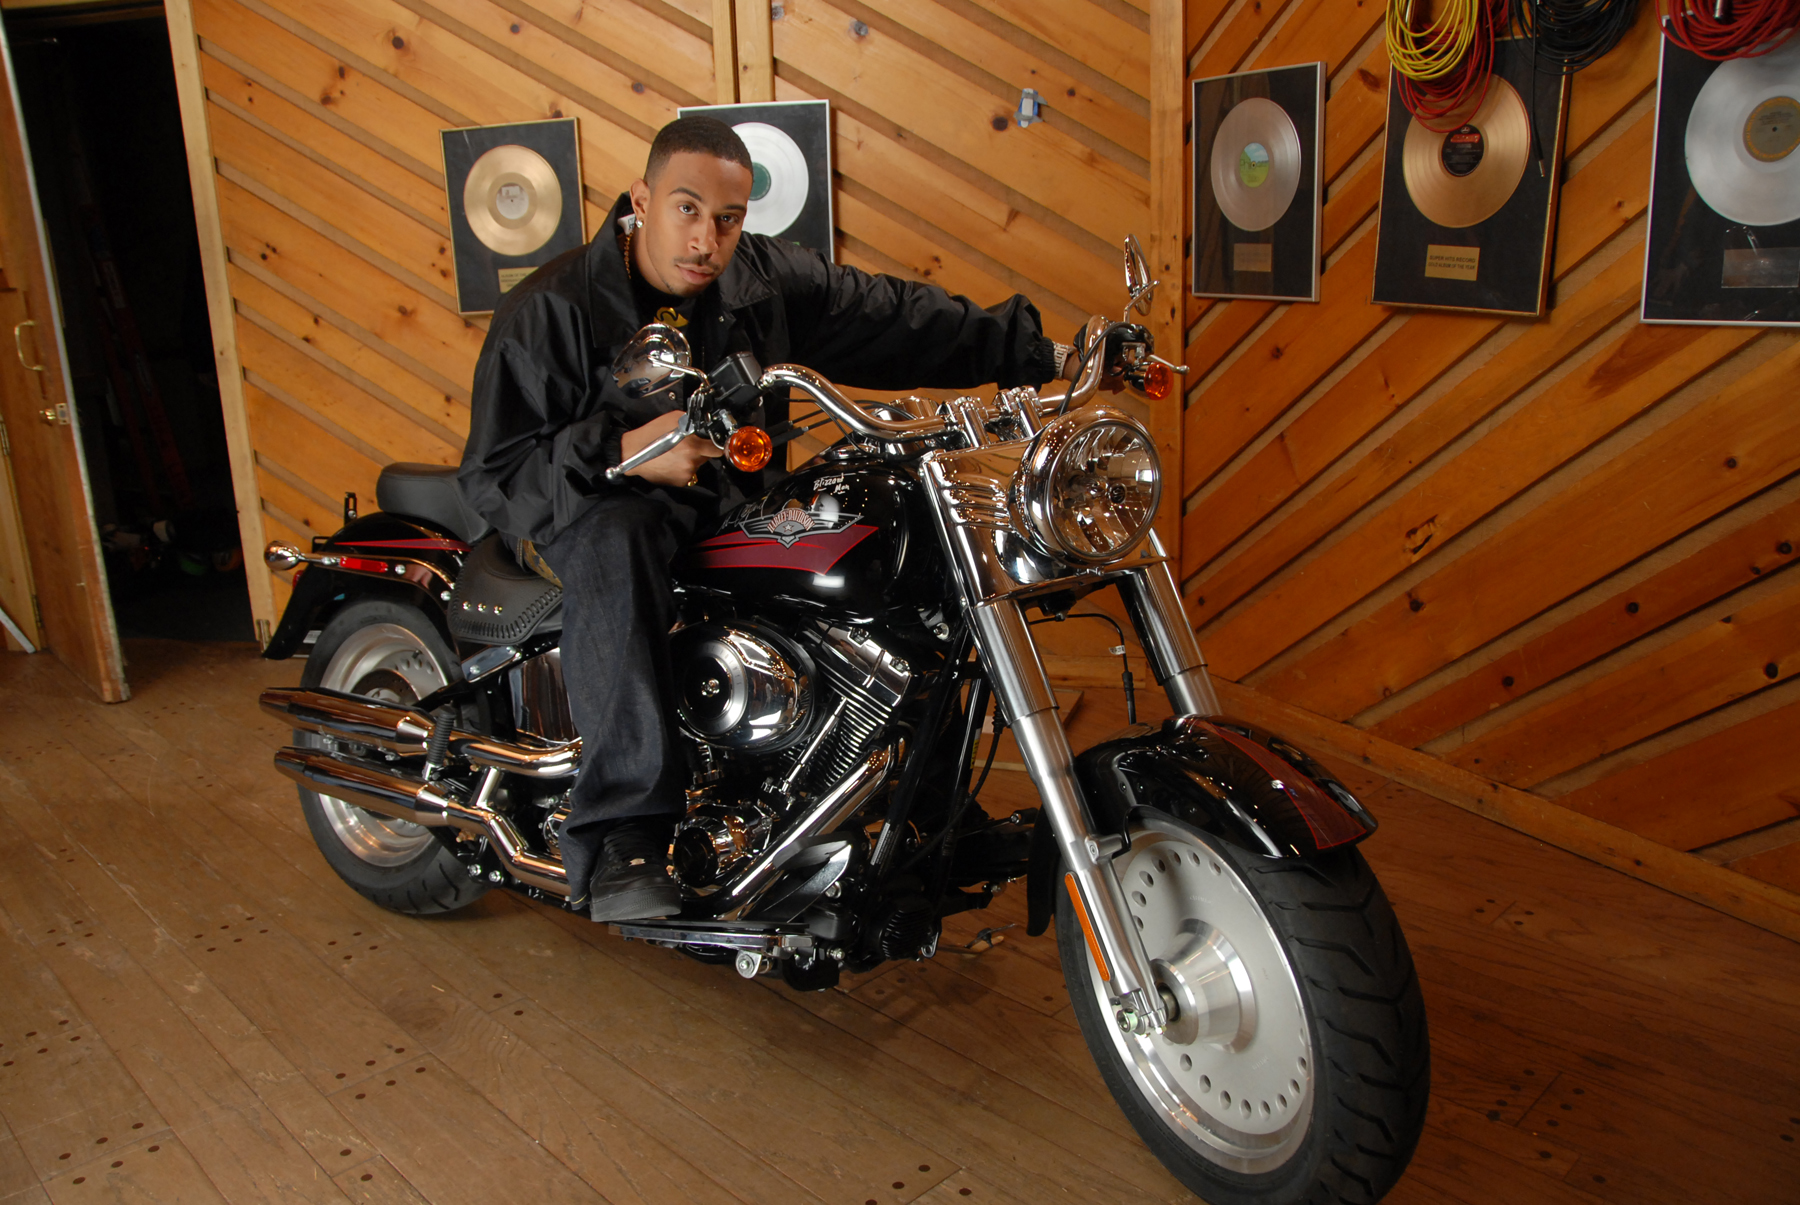 Live Ebay Auction Offering Brand New 2007 Harley Davidson Flstf Fat Boy Motorcycle Proceeds To Benefit The Ludacris Foundation